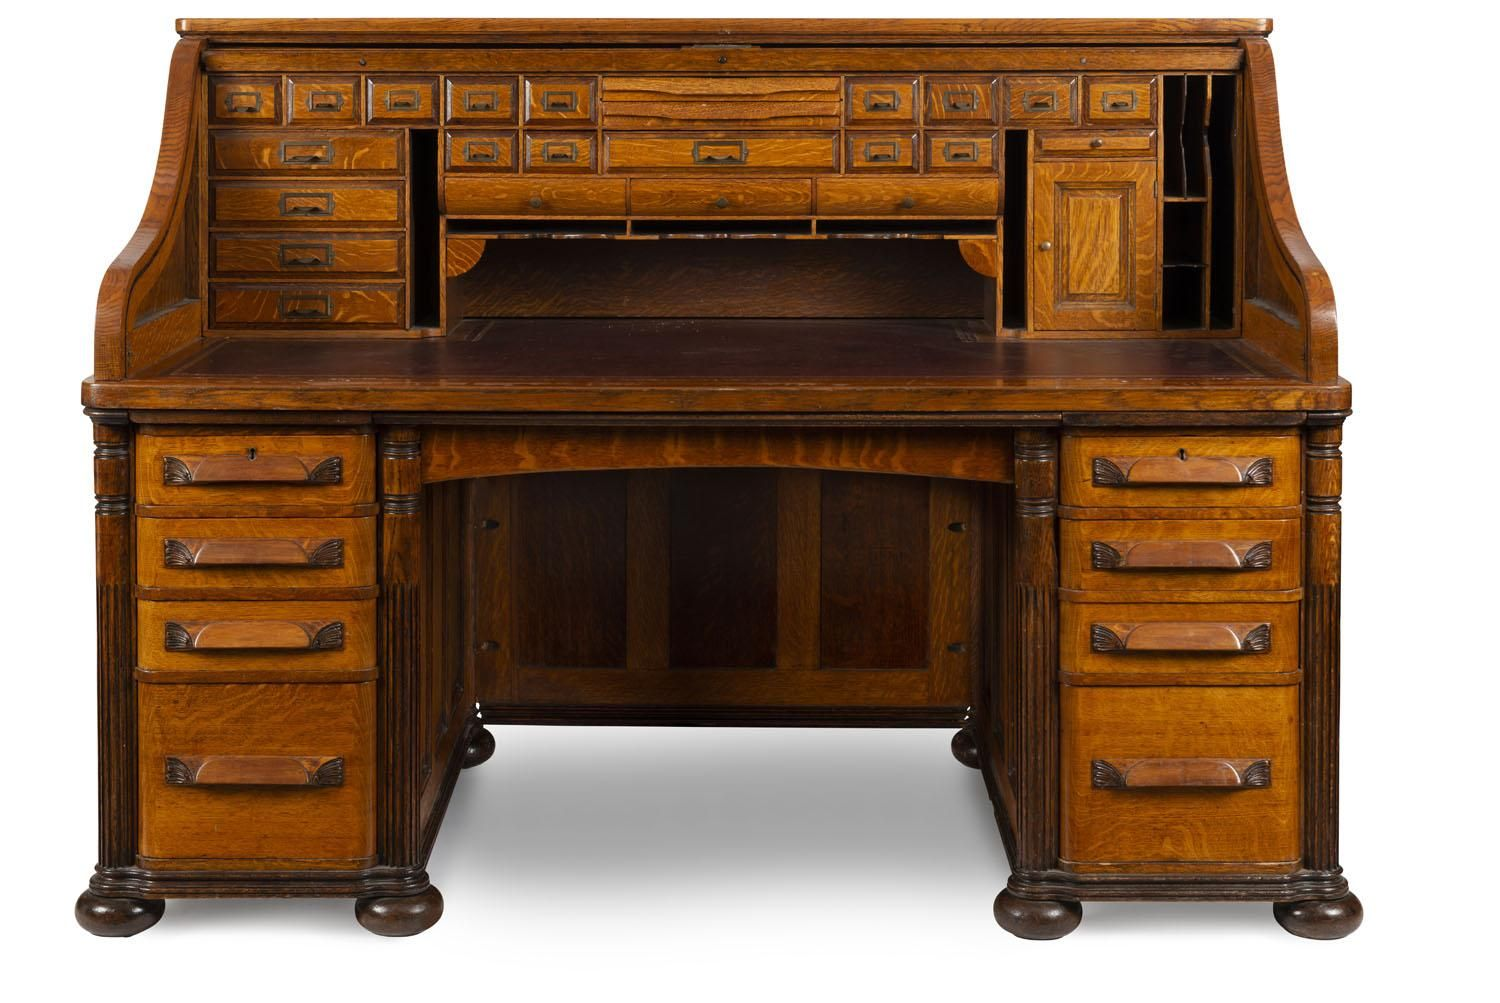 Pin On Furniture Decorative Arts Mad On Collections